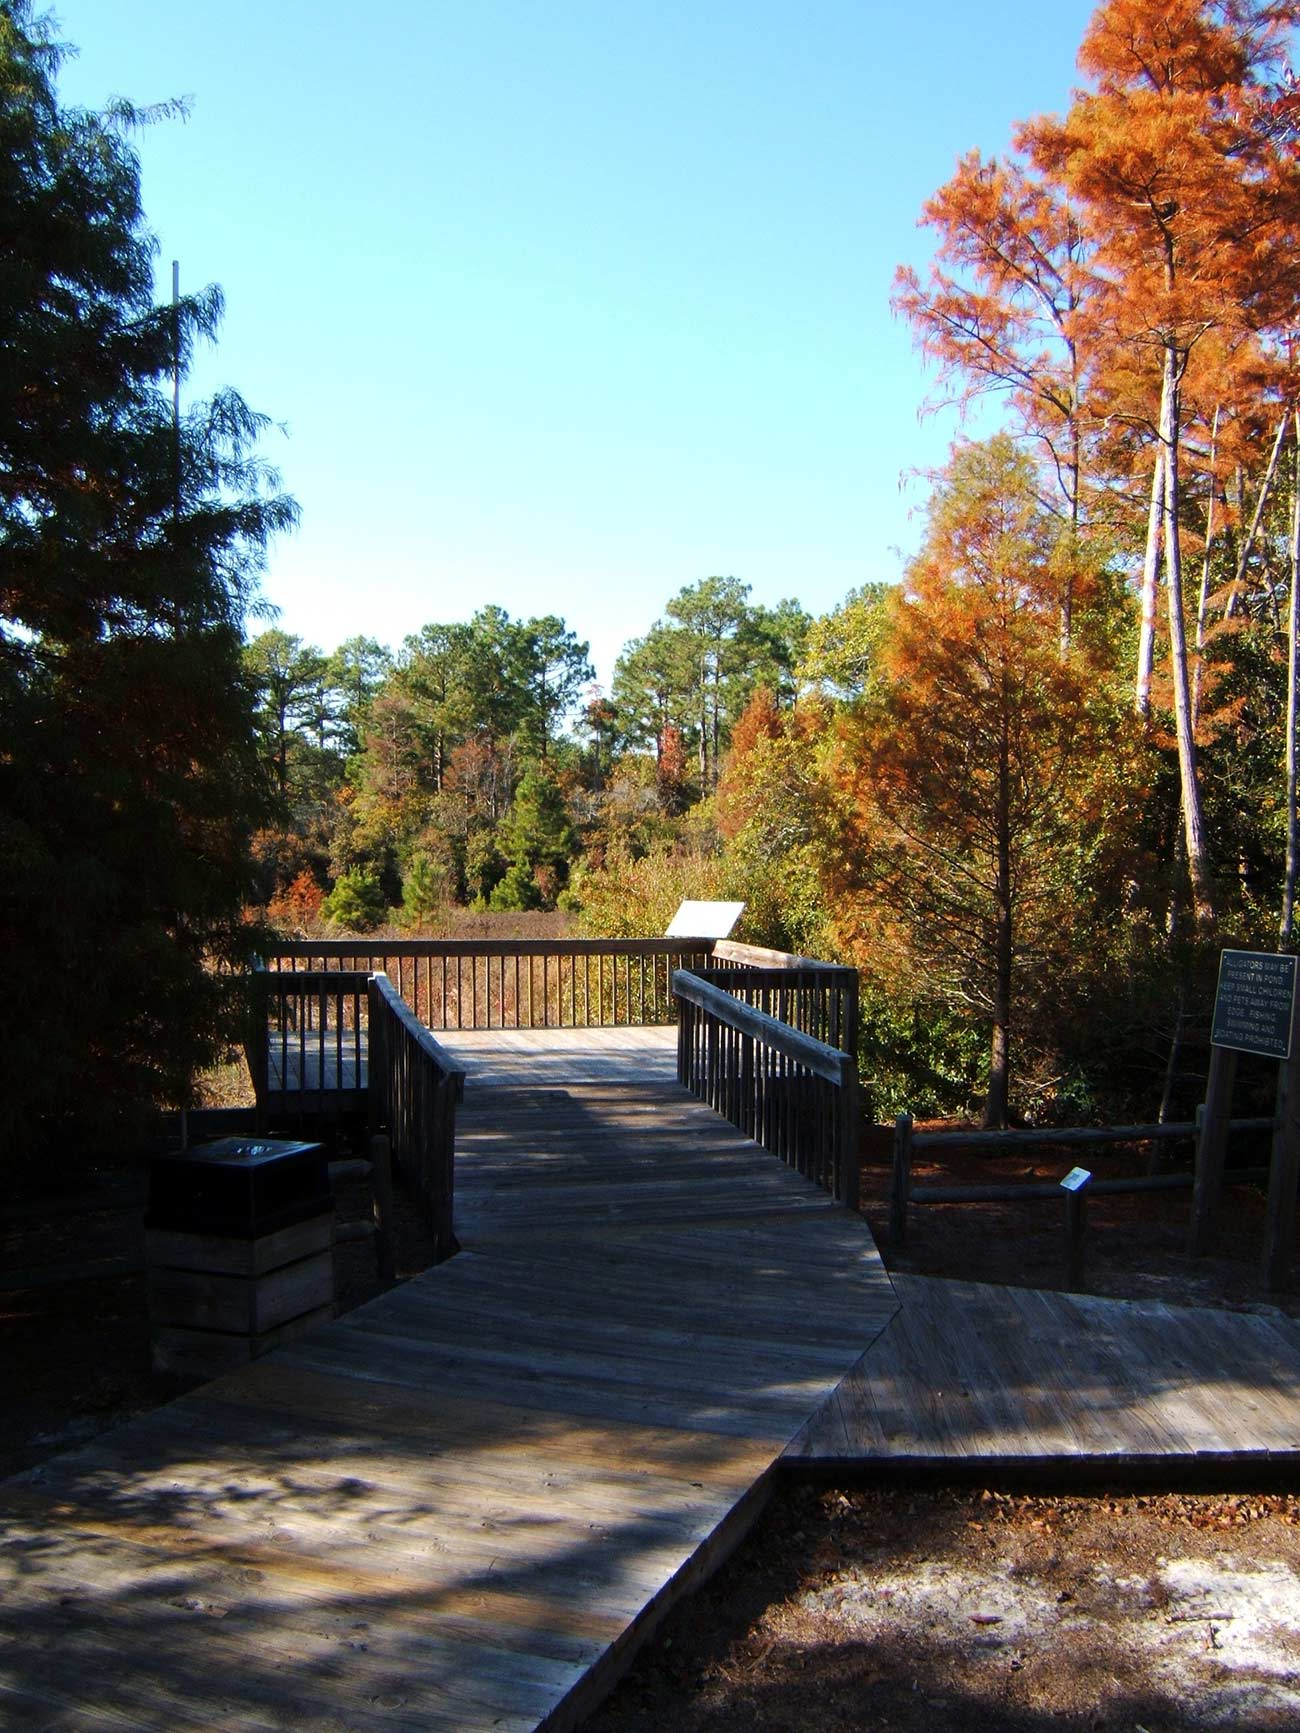 A viewing platform off the trail and over the water at Halyburton Memorial Park